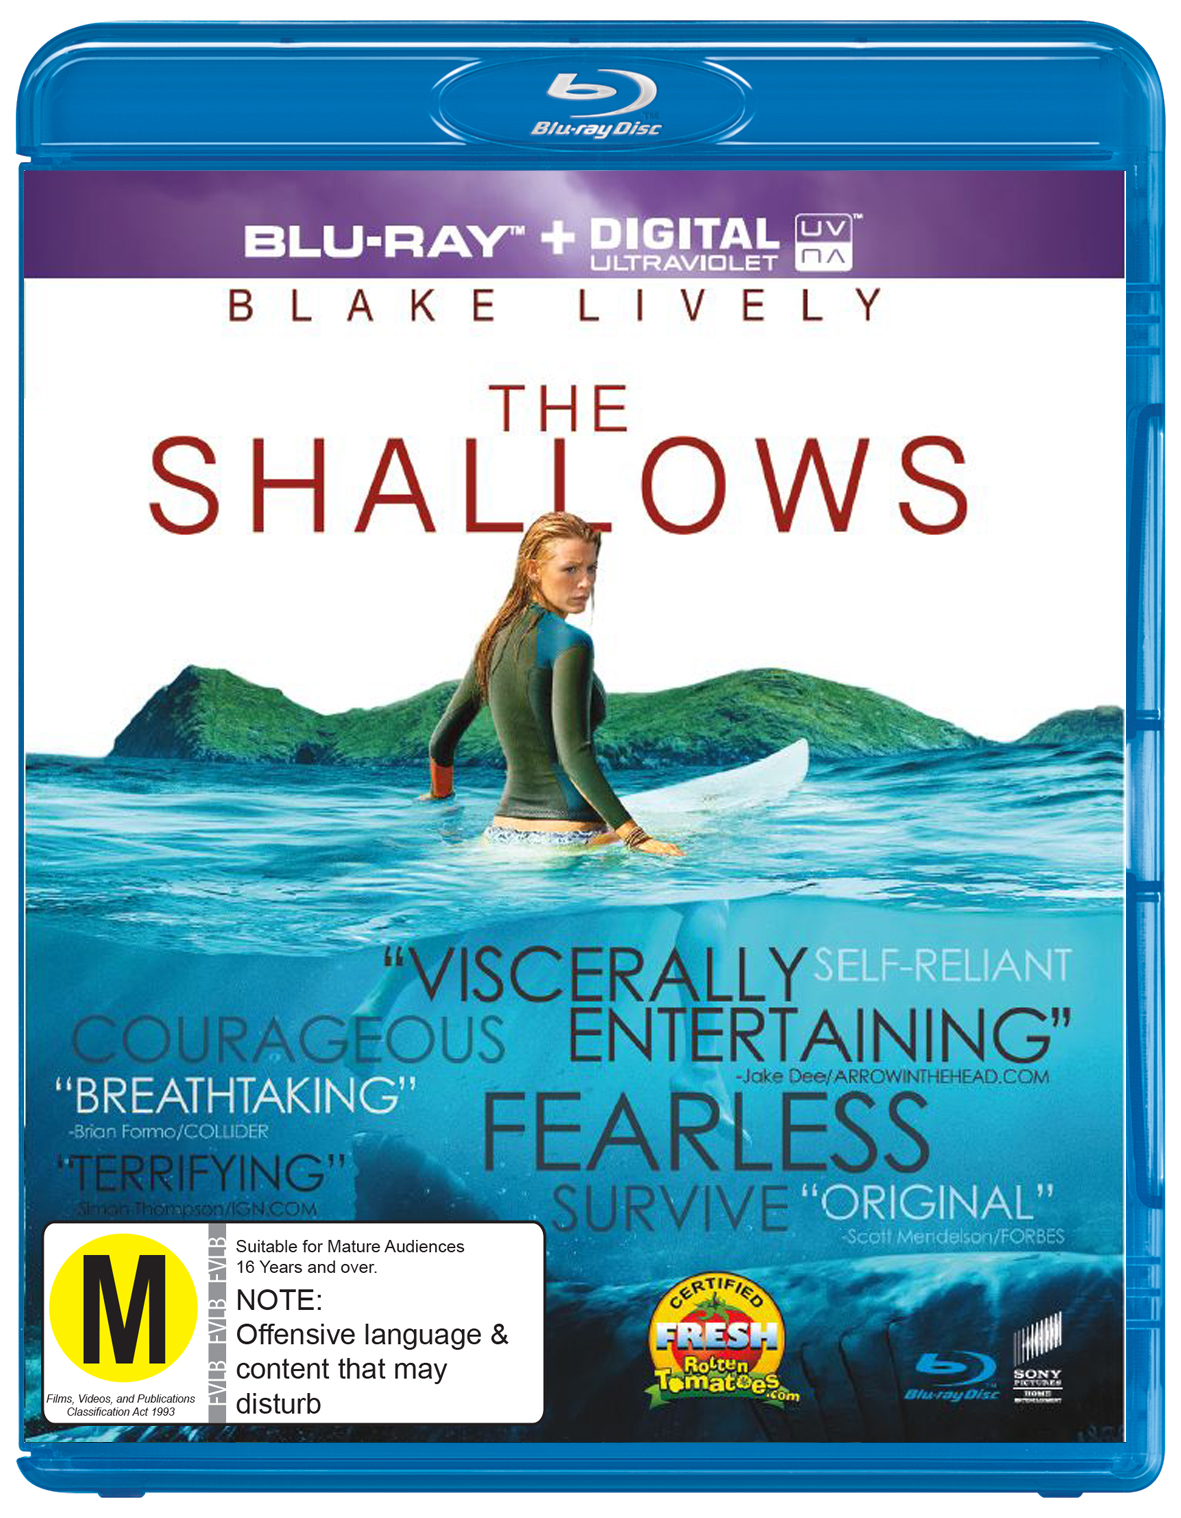 The Shallows on Blu-ray image